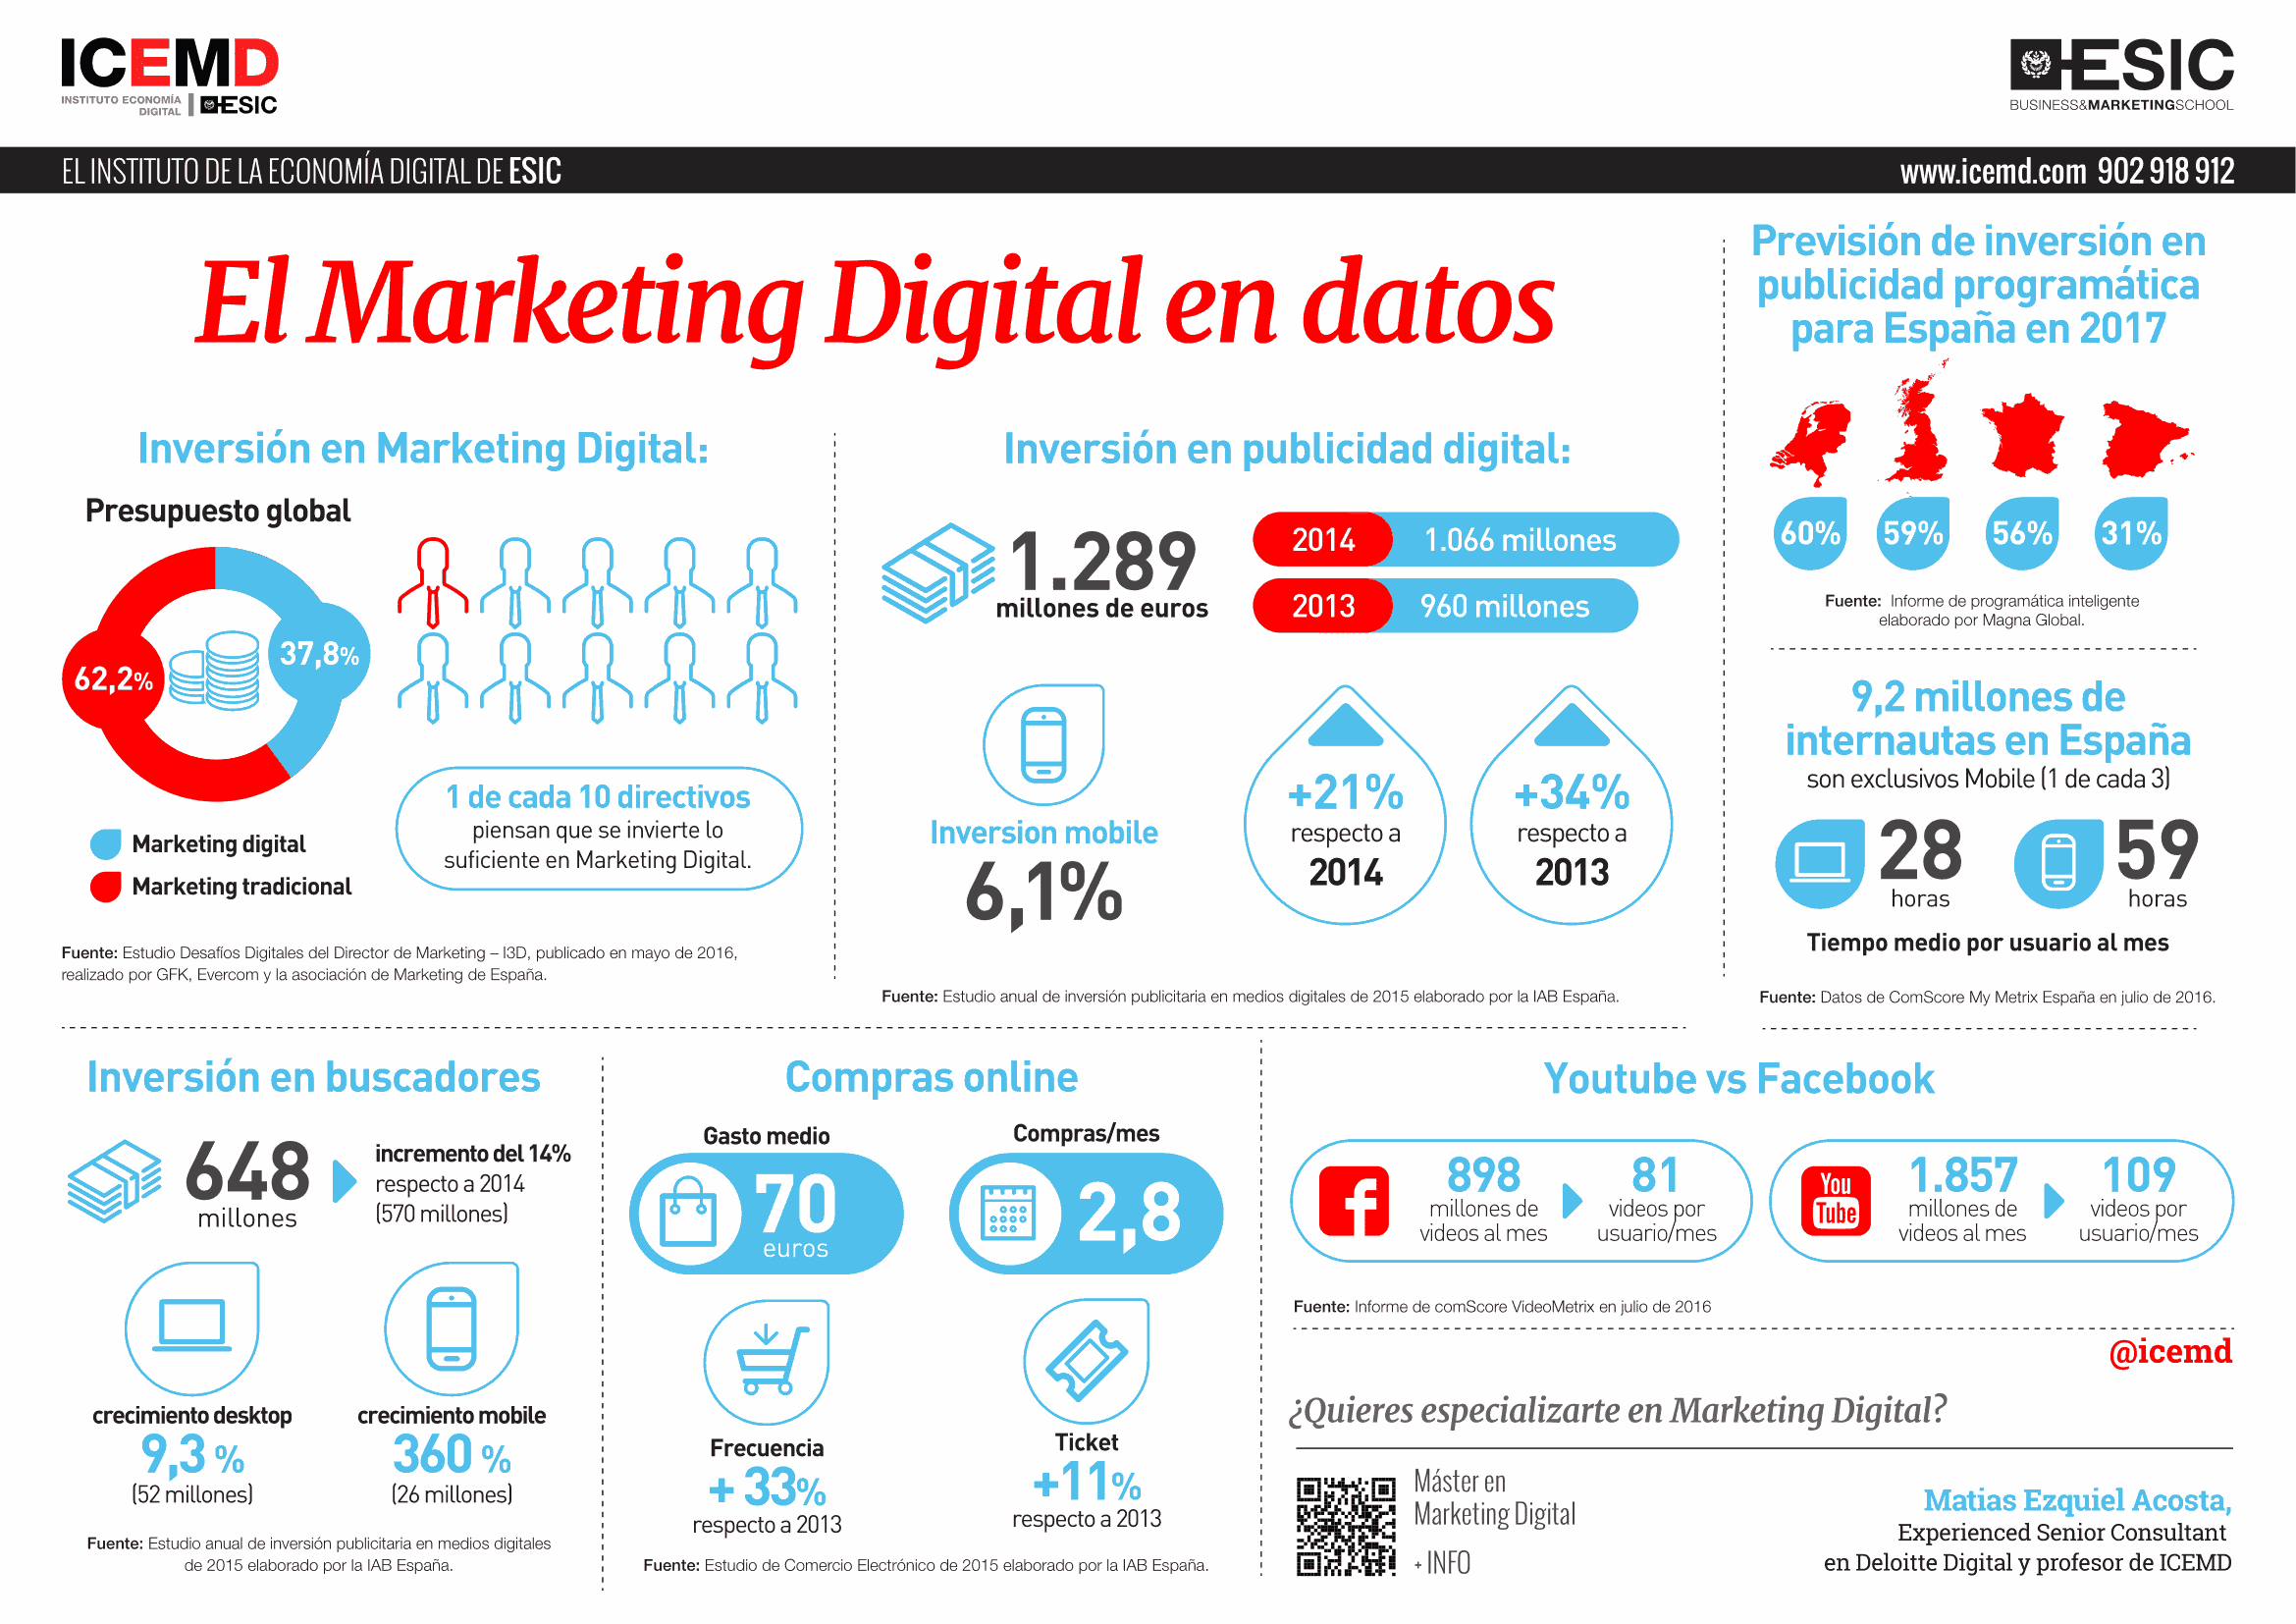 El Marketing Digital en datos